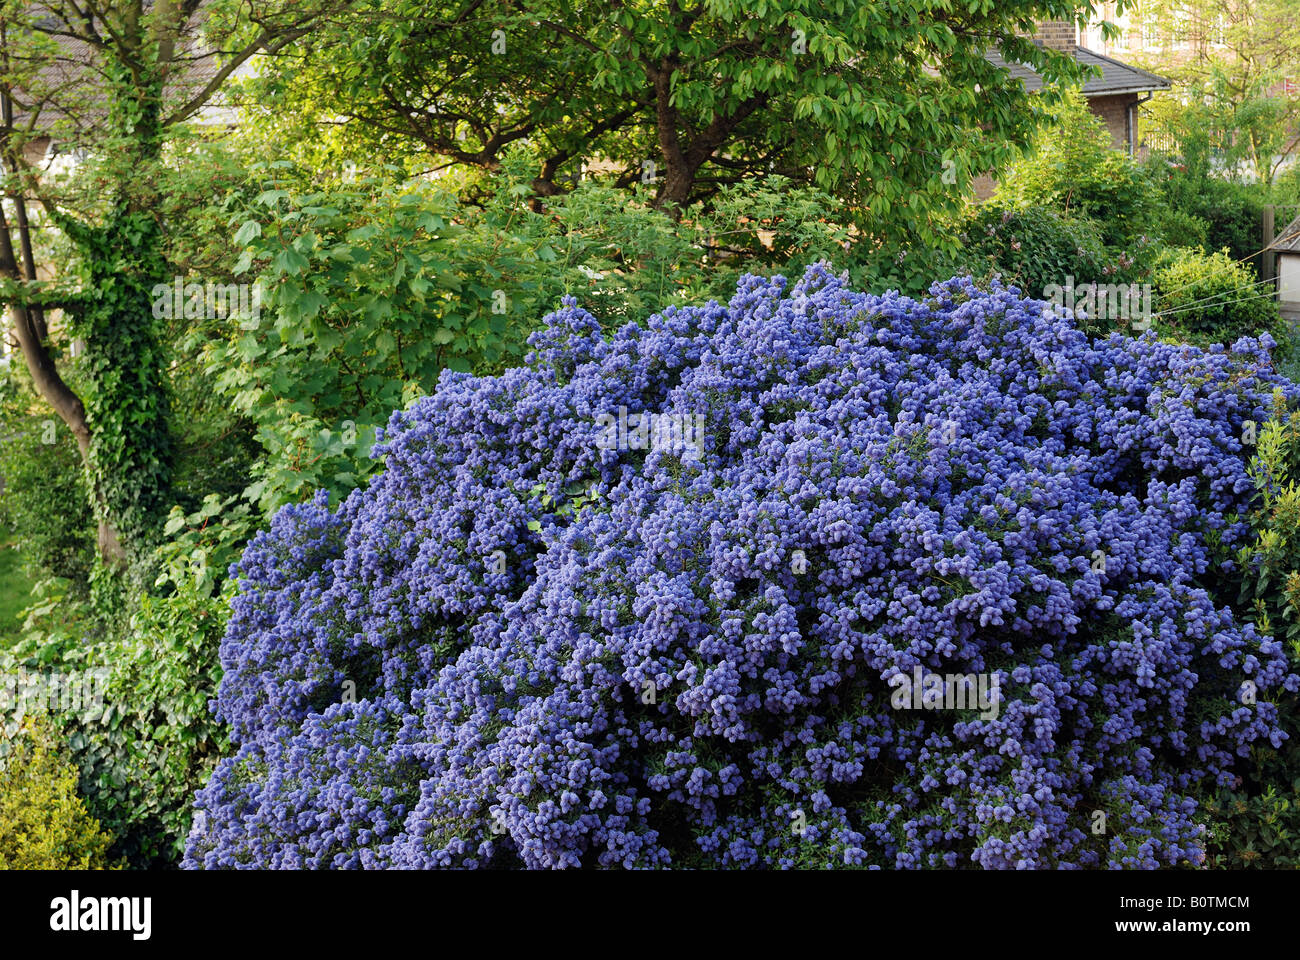 CALIFORNIA LILAC BUSH CEANOTHUS IN SUBURBAN GARDEN LONDON